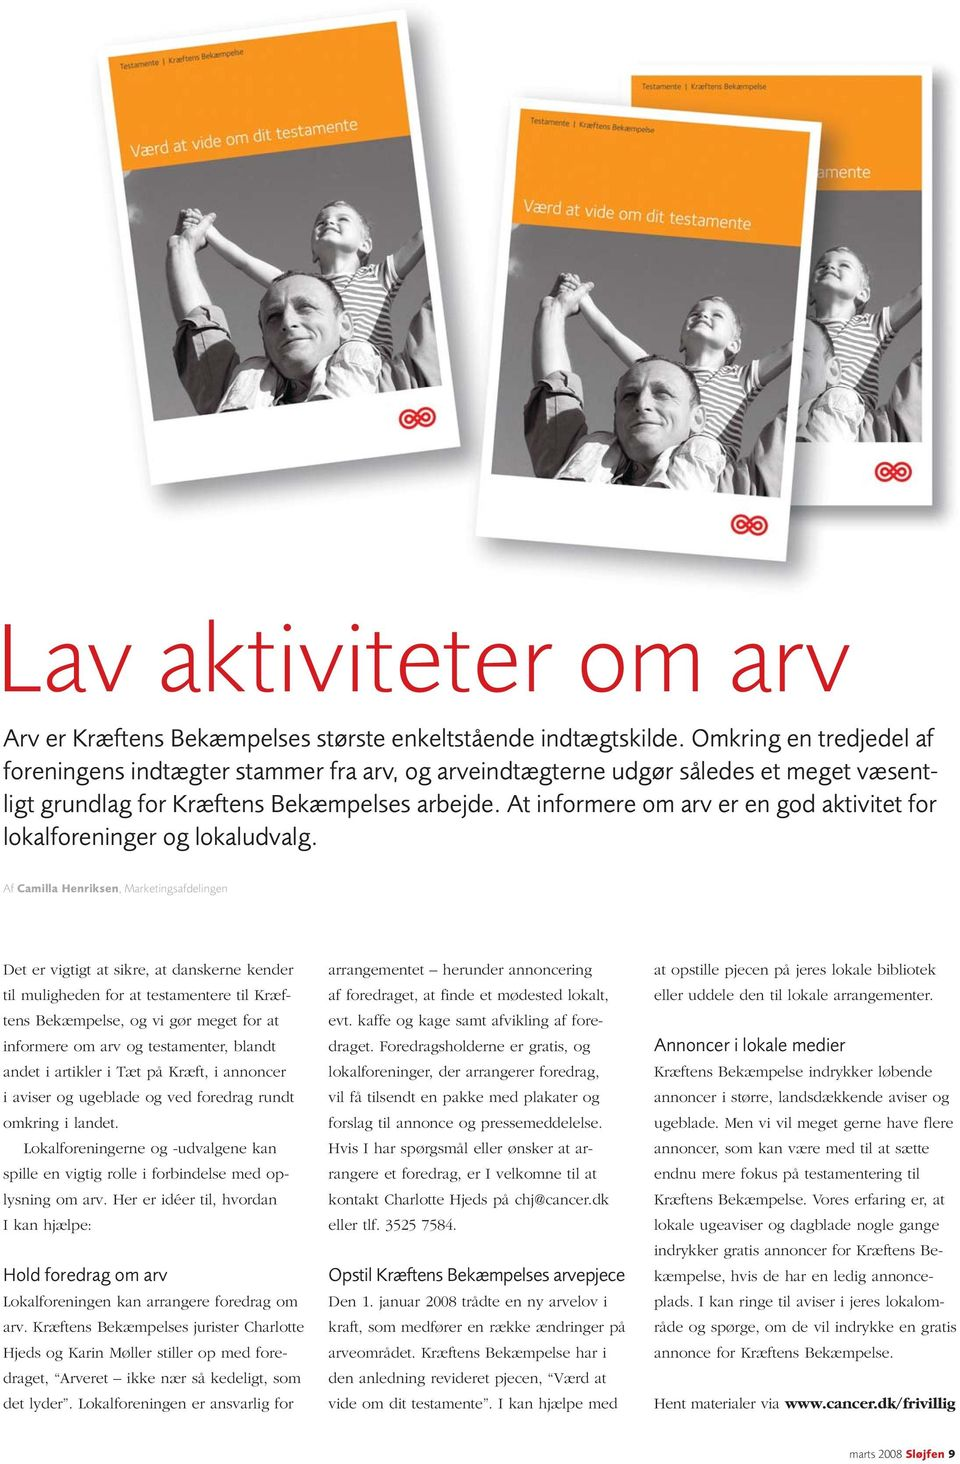 At informere om arv er en god aktivitet for lokalforeninger og lokaludvalg.